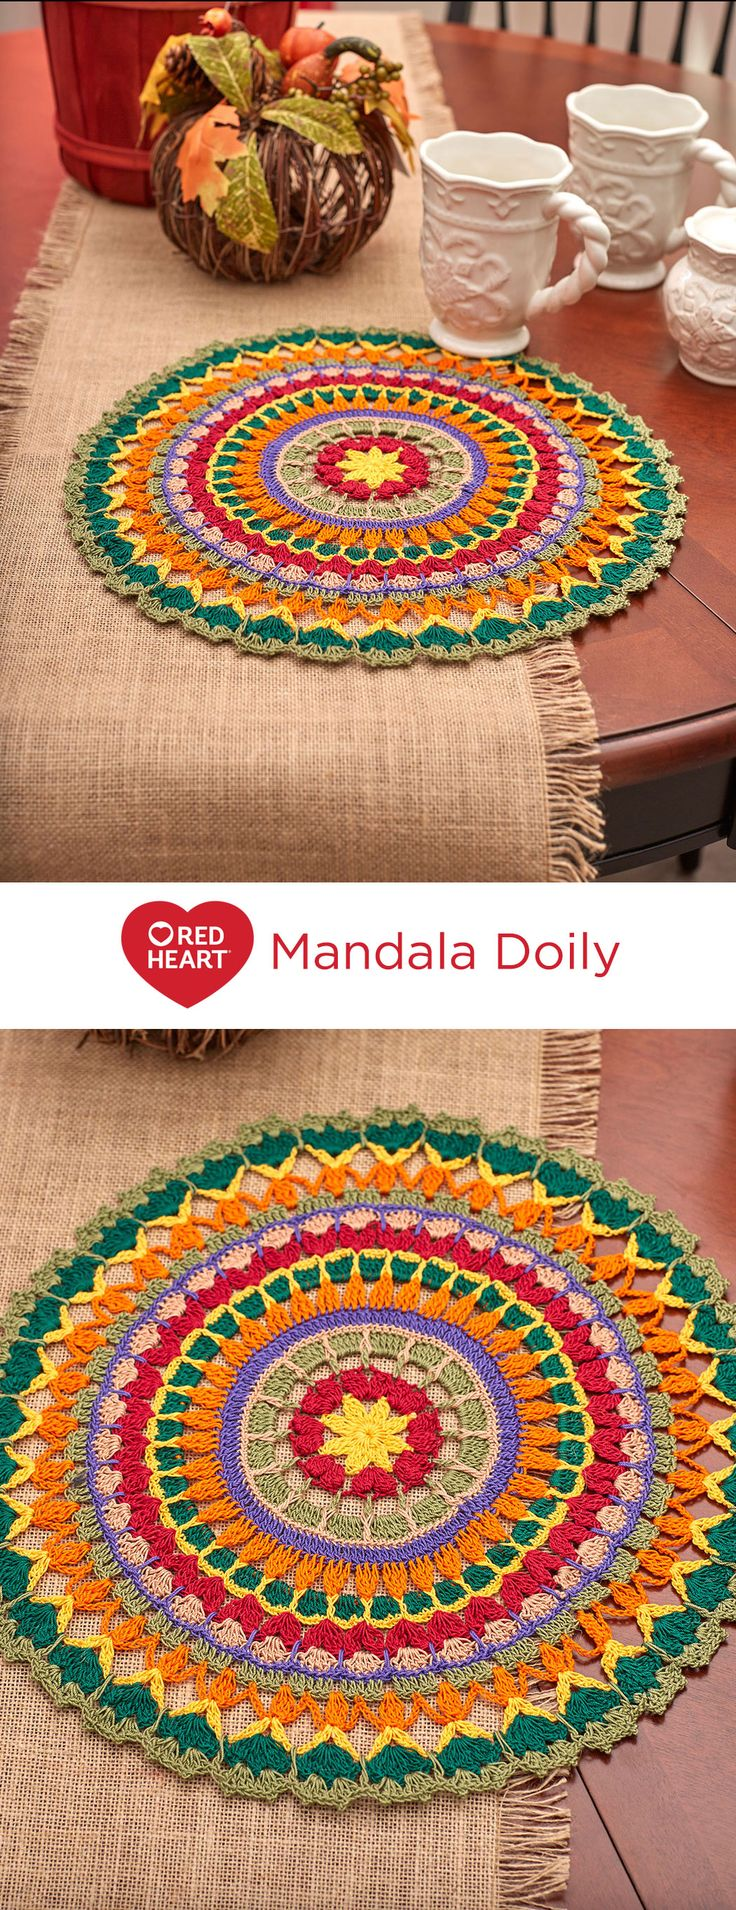 Mandala Doily Free Crochet Pattern in Aunt Lydia's Crochet Thread -- We've used fall colors for this beautiful mandala design, but we encourage you to crochet yours in your own unique color combination. Use it to add interest to a table setting or tray, or frame it for a wonderful art piece.